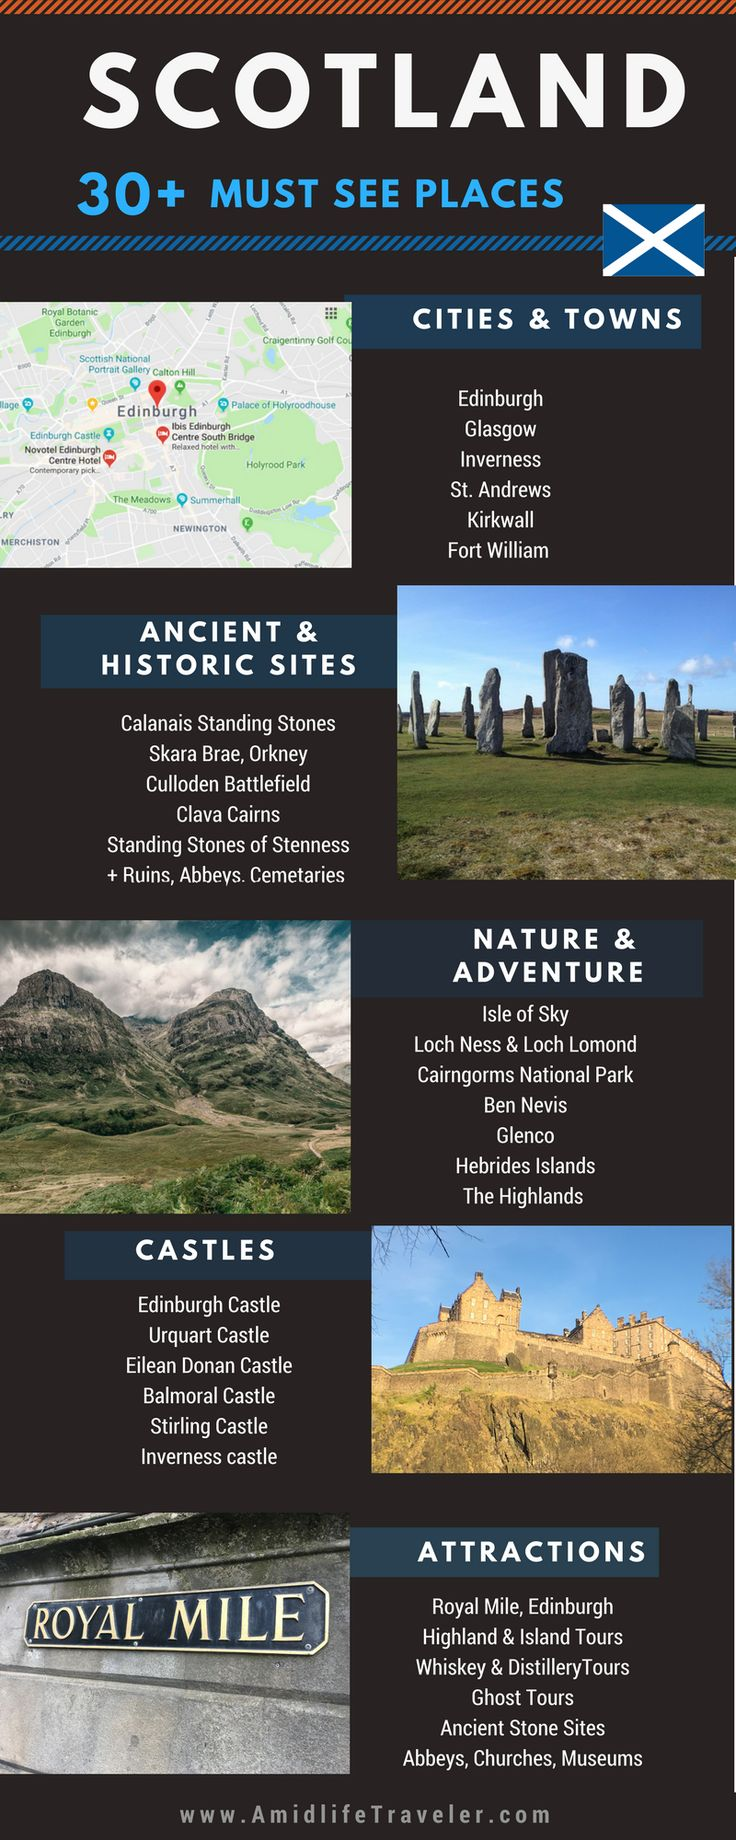 30+ Must See Place in Scotland; cities & towns, Scotland's ancient sites, Scotland's nature areas, Scottish castles, plus tourist attractions and things to do to help you plan a GREAT Scotland vacation.